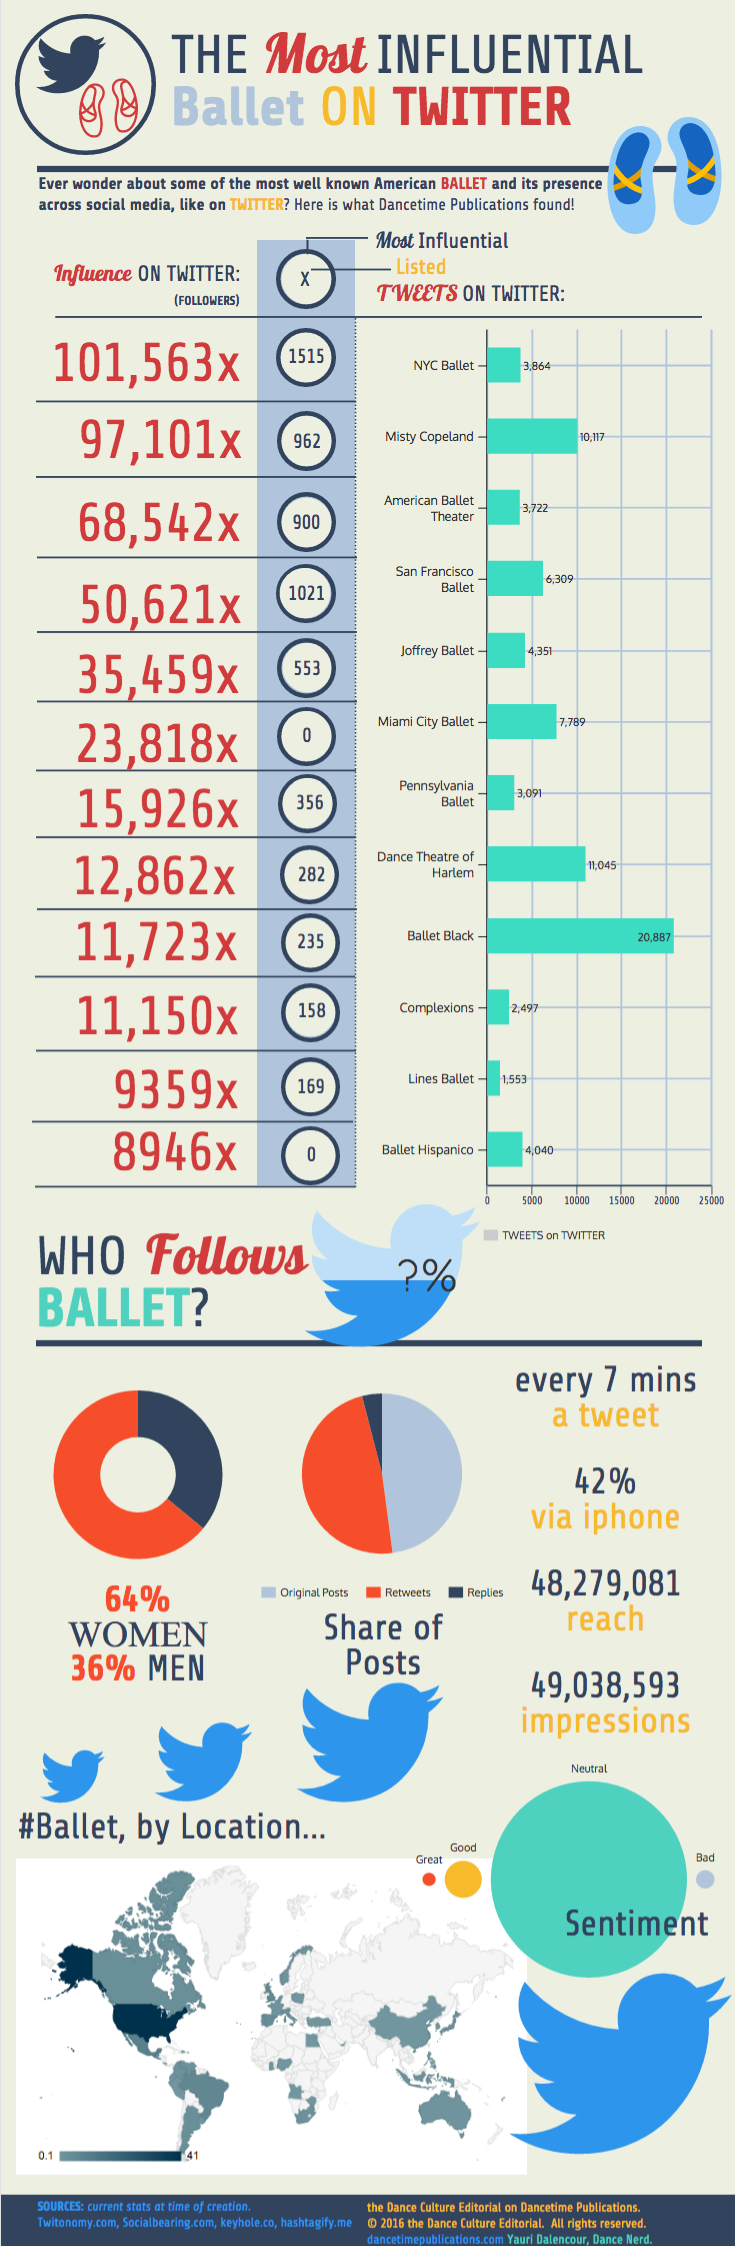 Ballet Influence on Twitter by Yauri Dalencour.